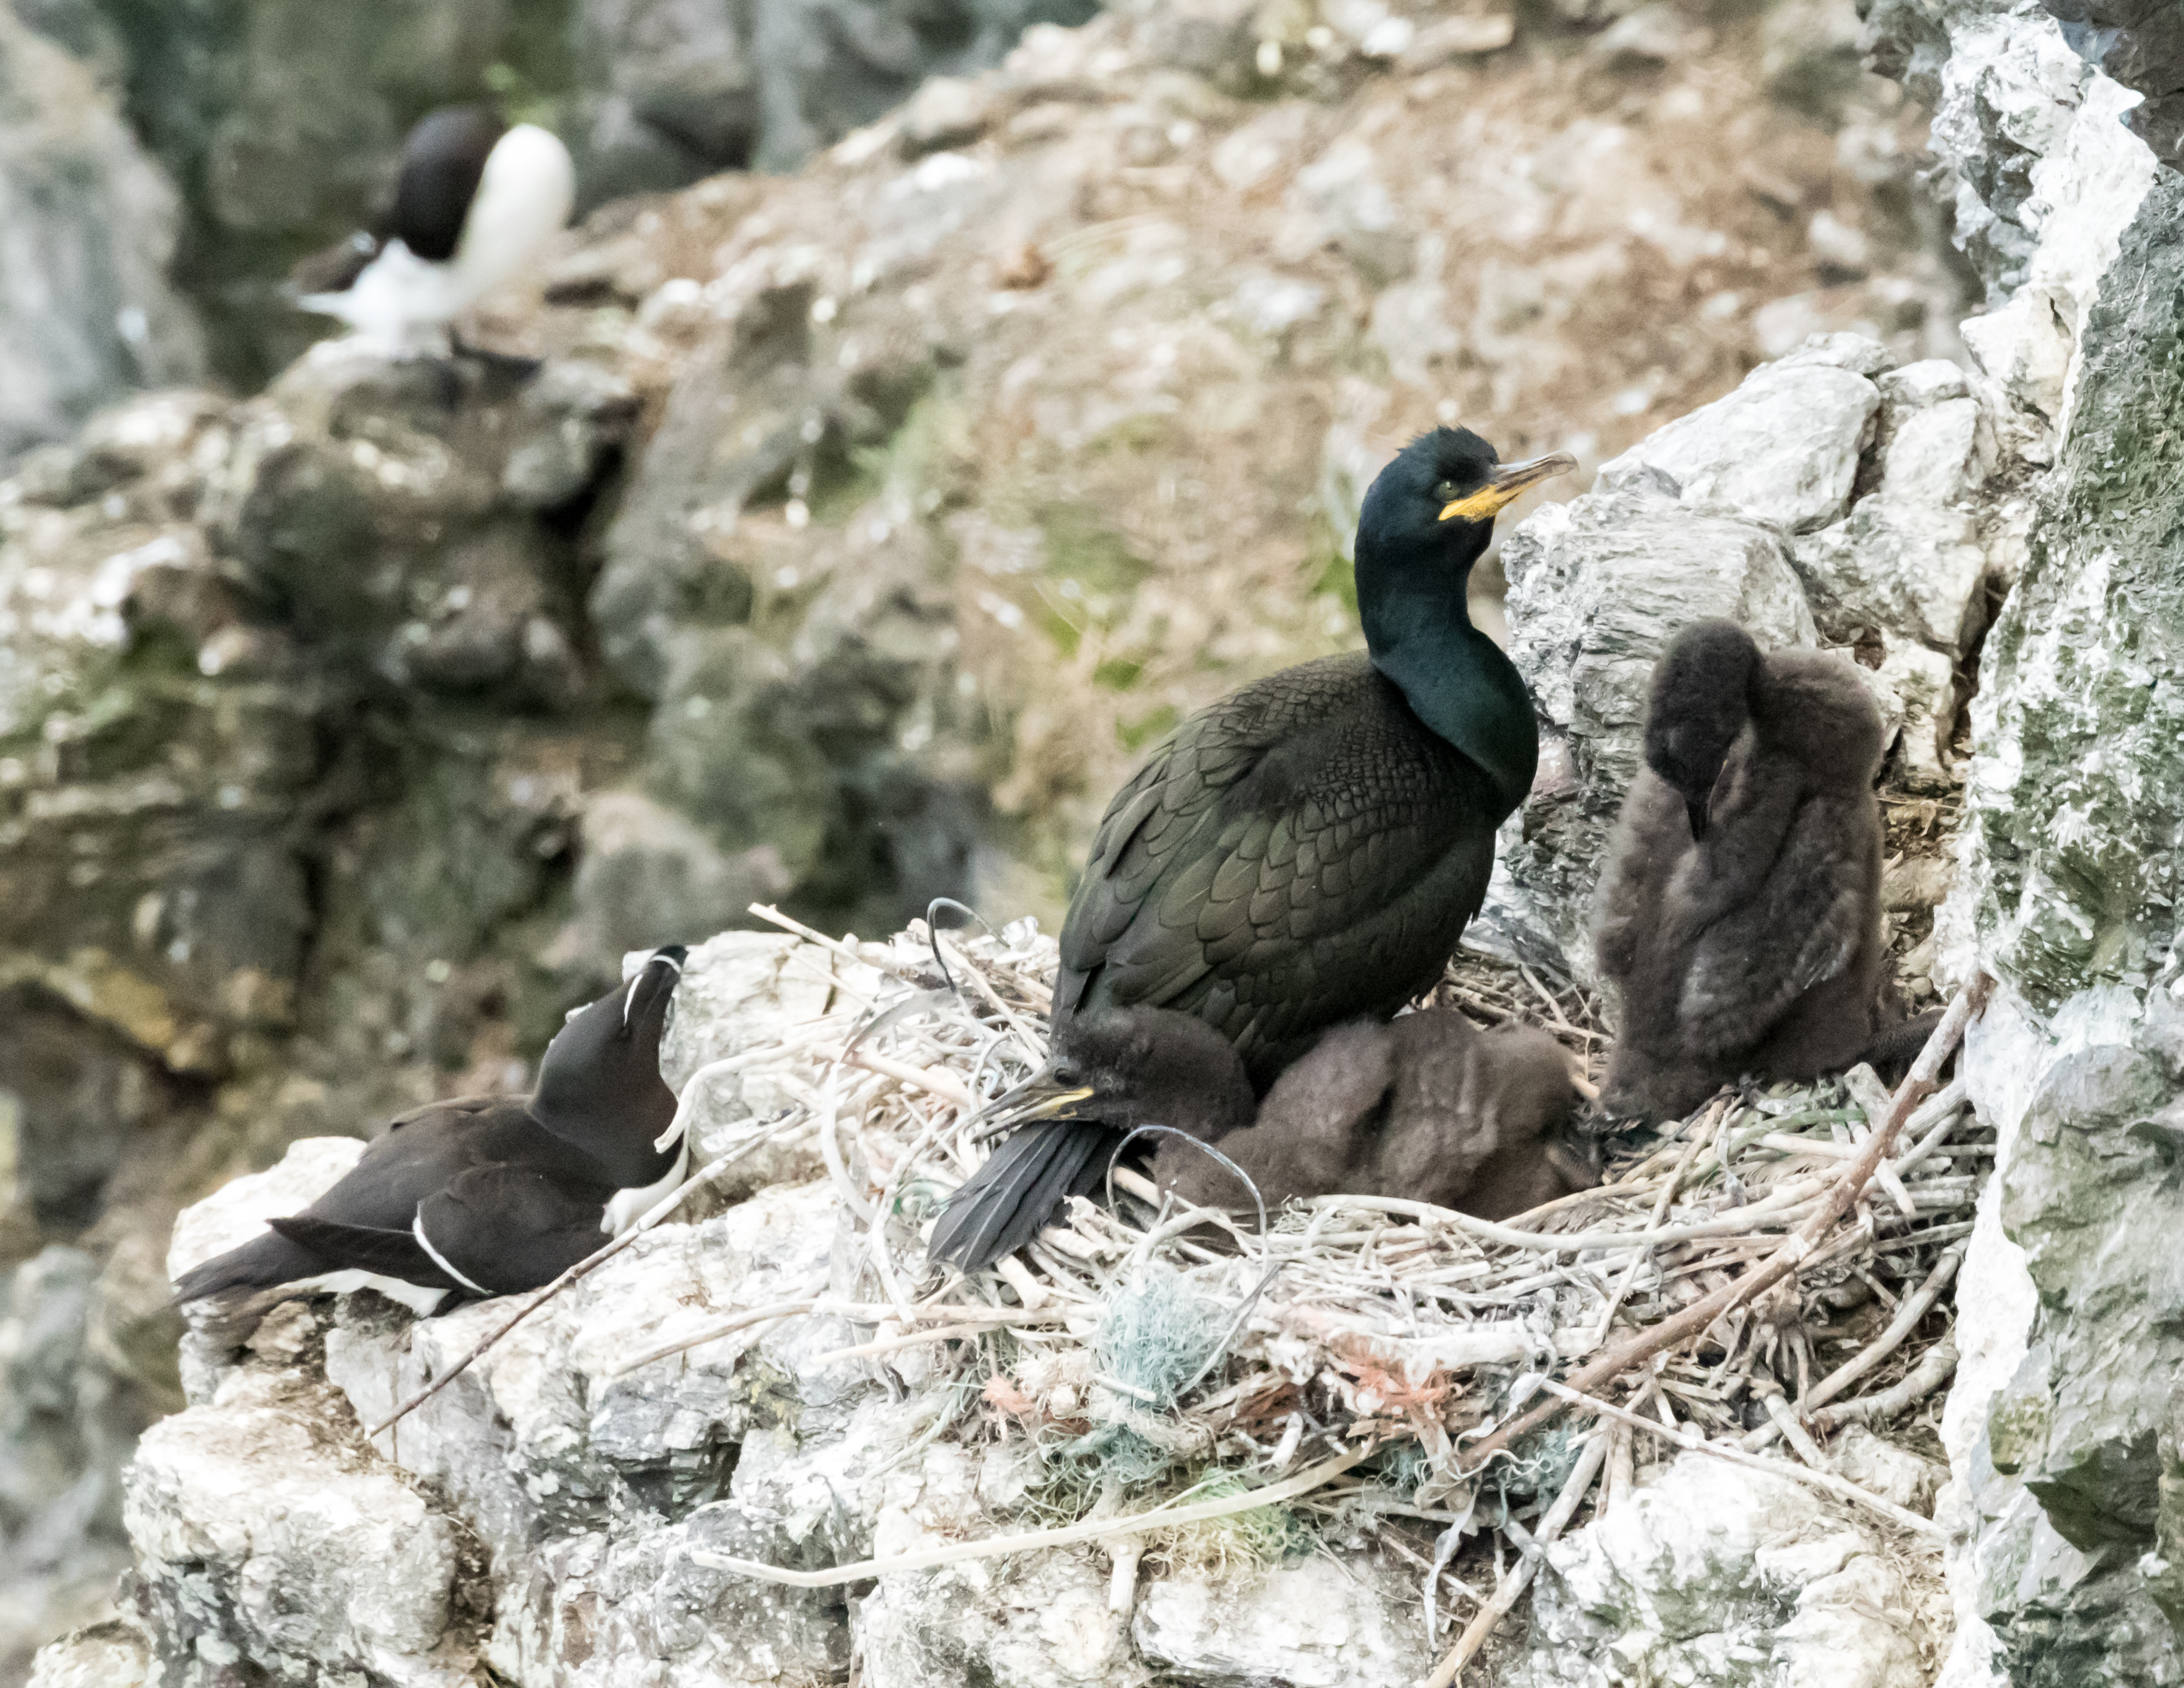 Cormorants with chicks